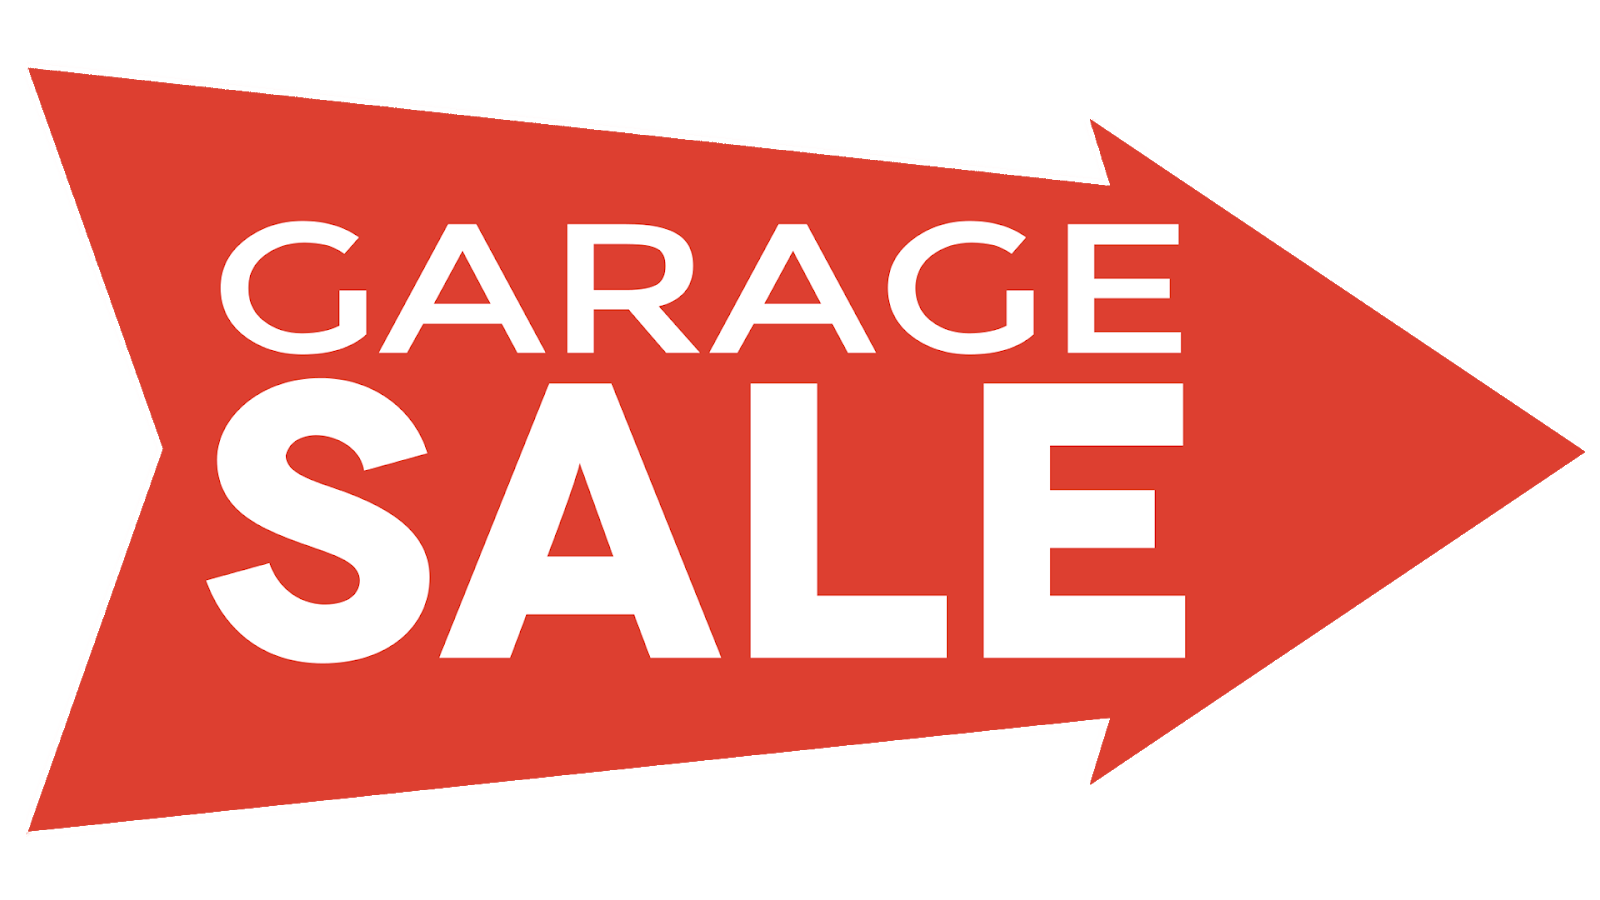 download large image garage sale fundraiser goal thermometer [ 1600 x 900 Pixel ]